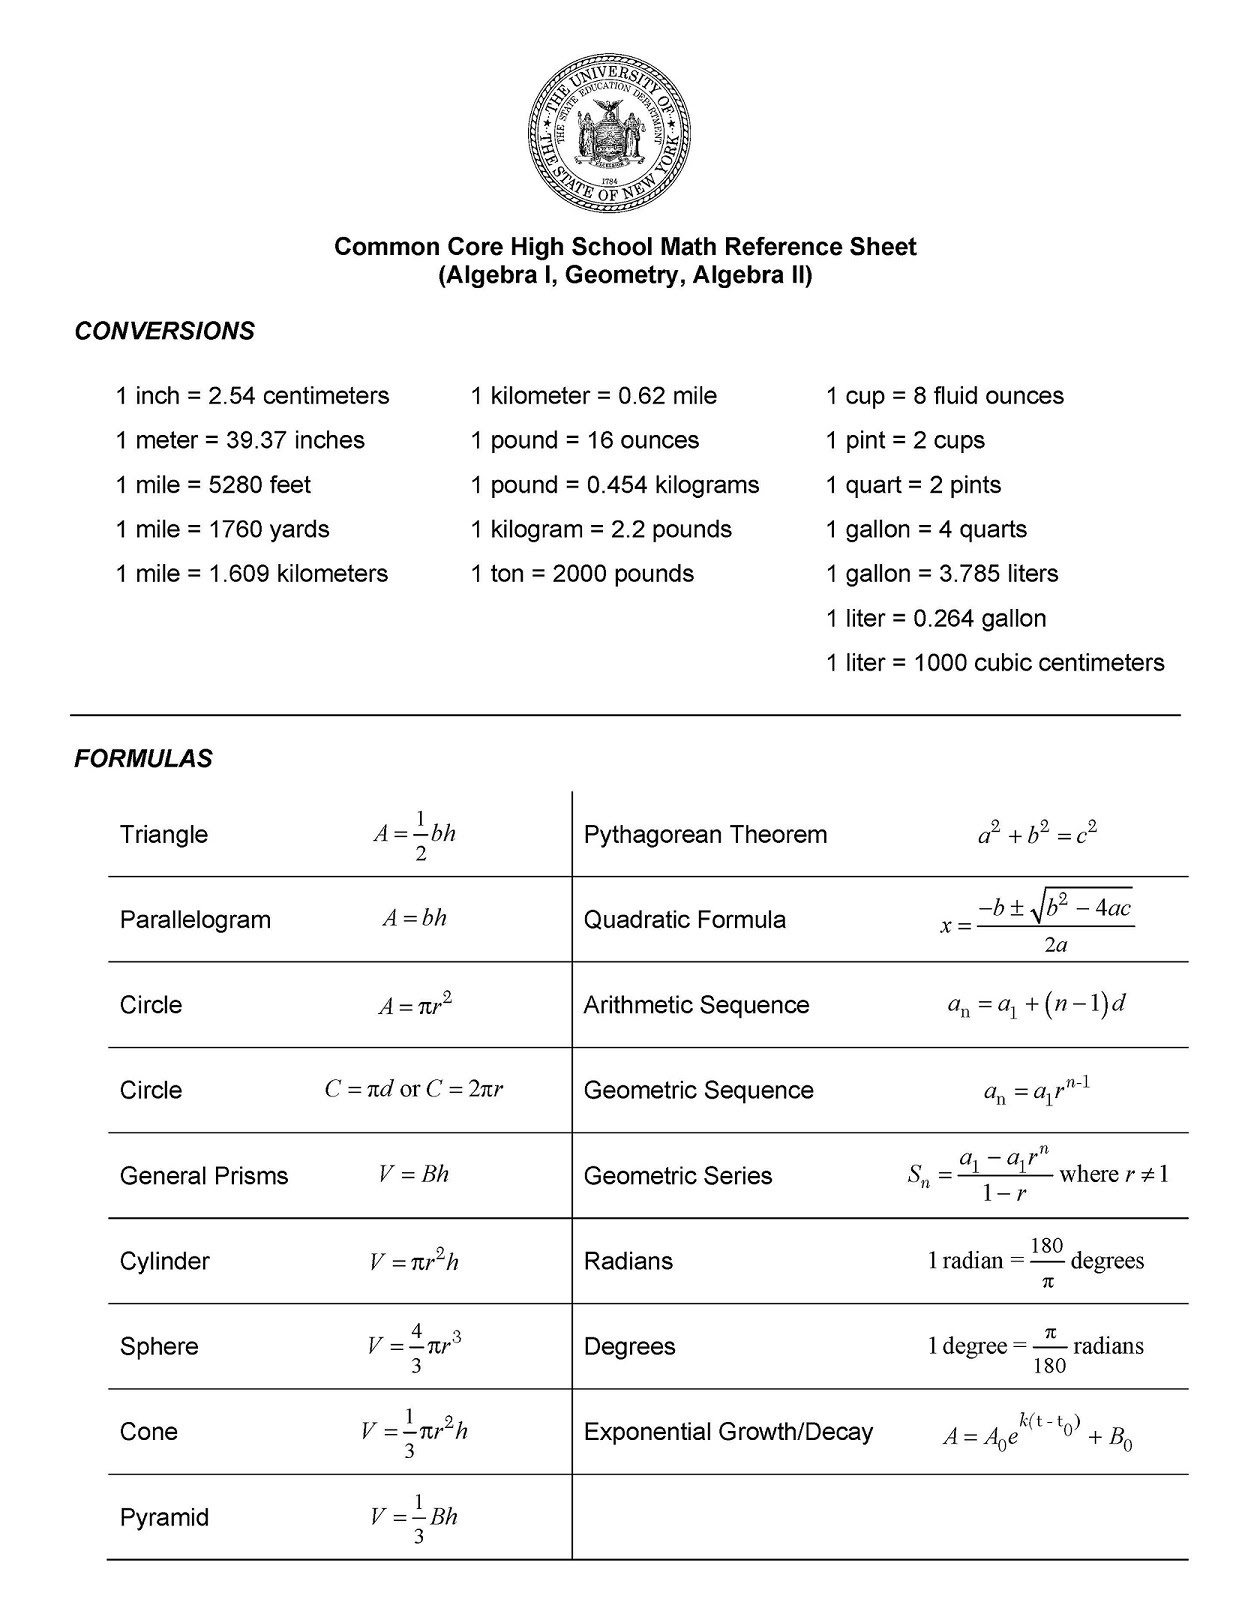 Regents Formula Sheet - Mr  Chanowsky's Math Page